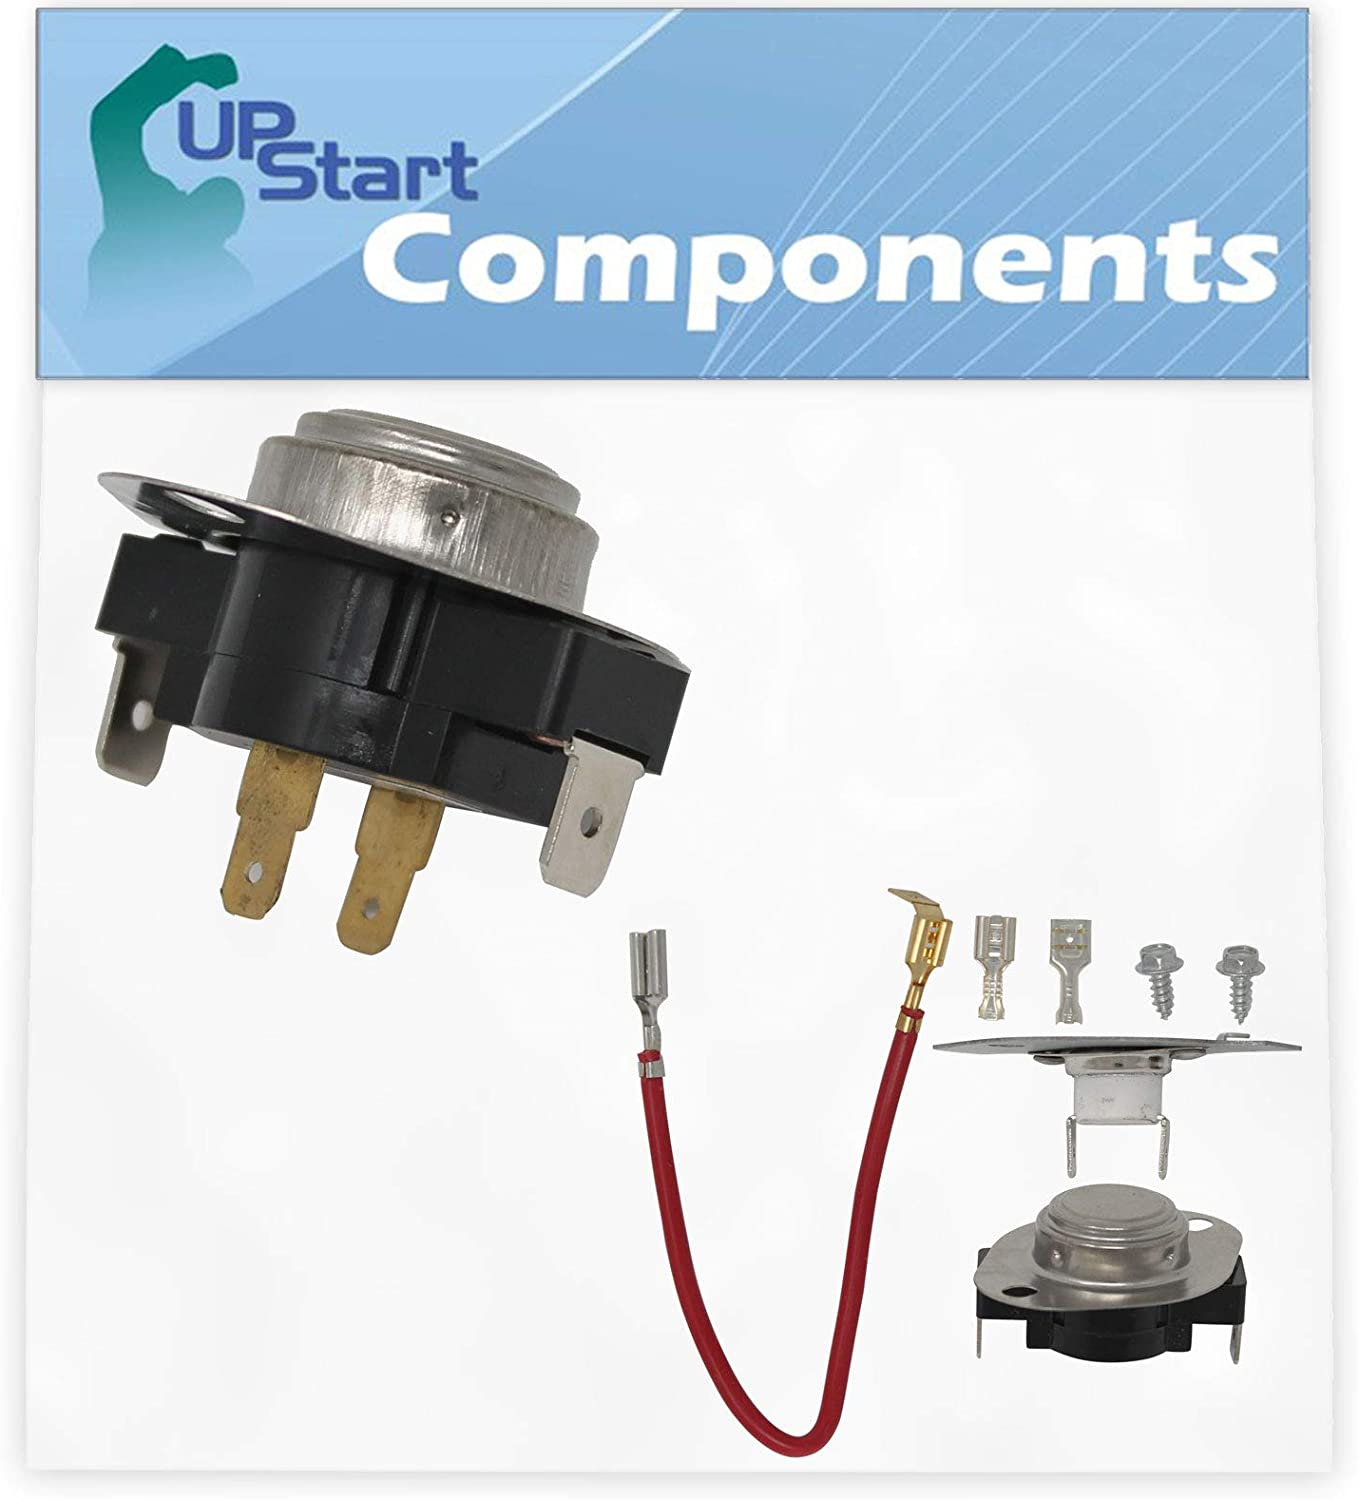 3387134 Cycling Thermostat & 279816 Thermostat Kit Replacement for Estate TEDS740JQ2 Dryer - Compatible with WP3387134 Thermostat & 279816 Thermal Cut-Off Kit - UpStart Components Brand